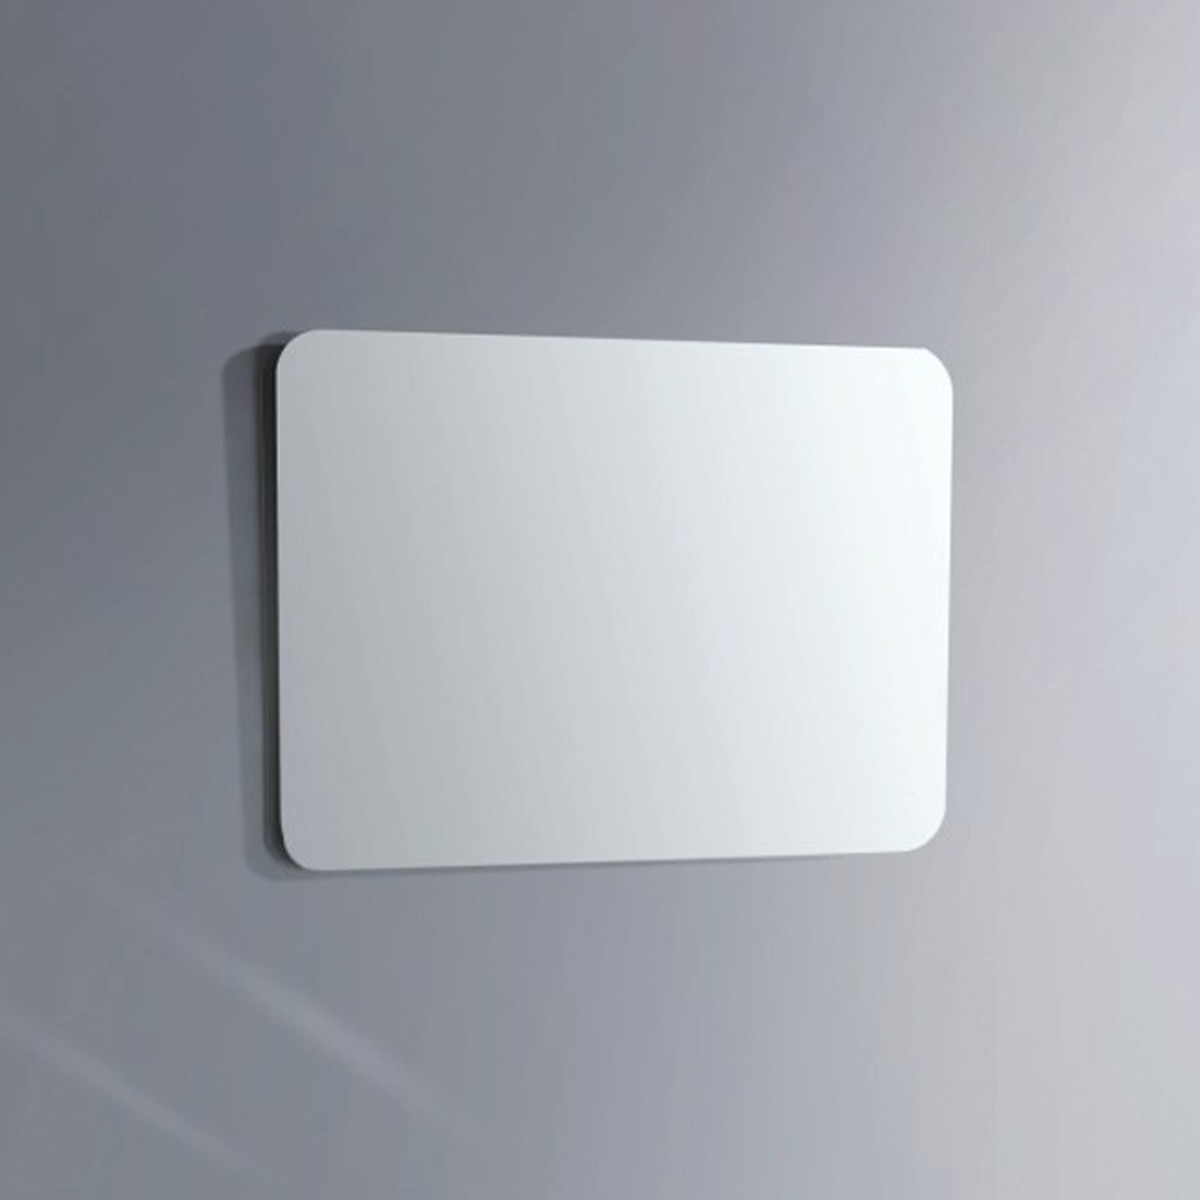 30 x 20 In. Bathroom Vanity Mirror (MY8002-M)